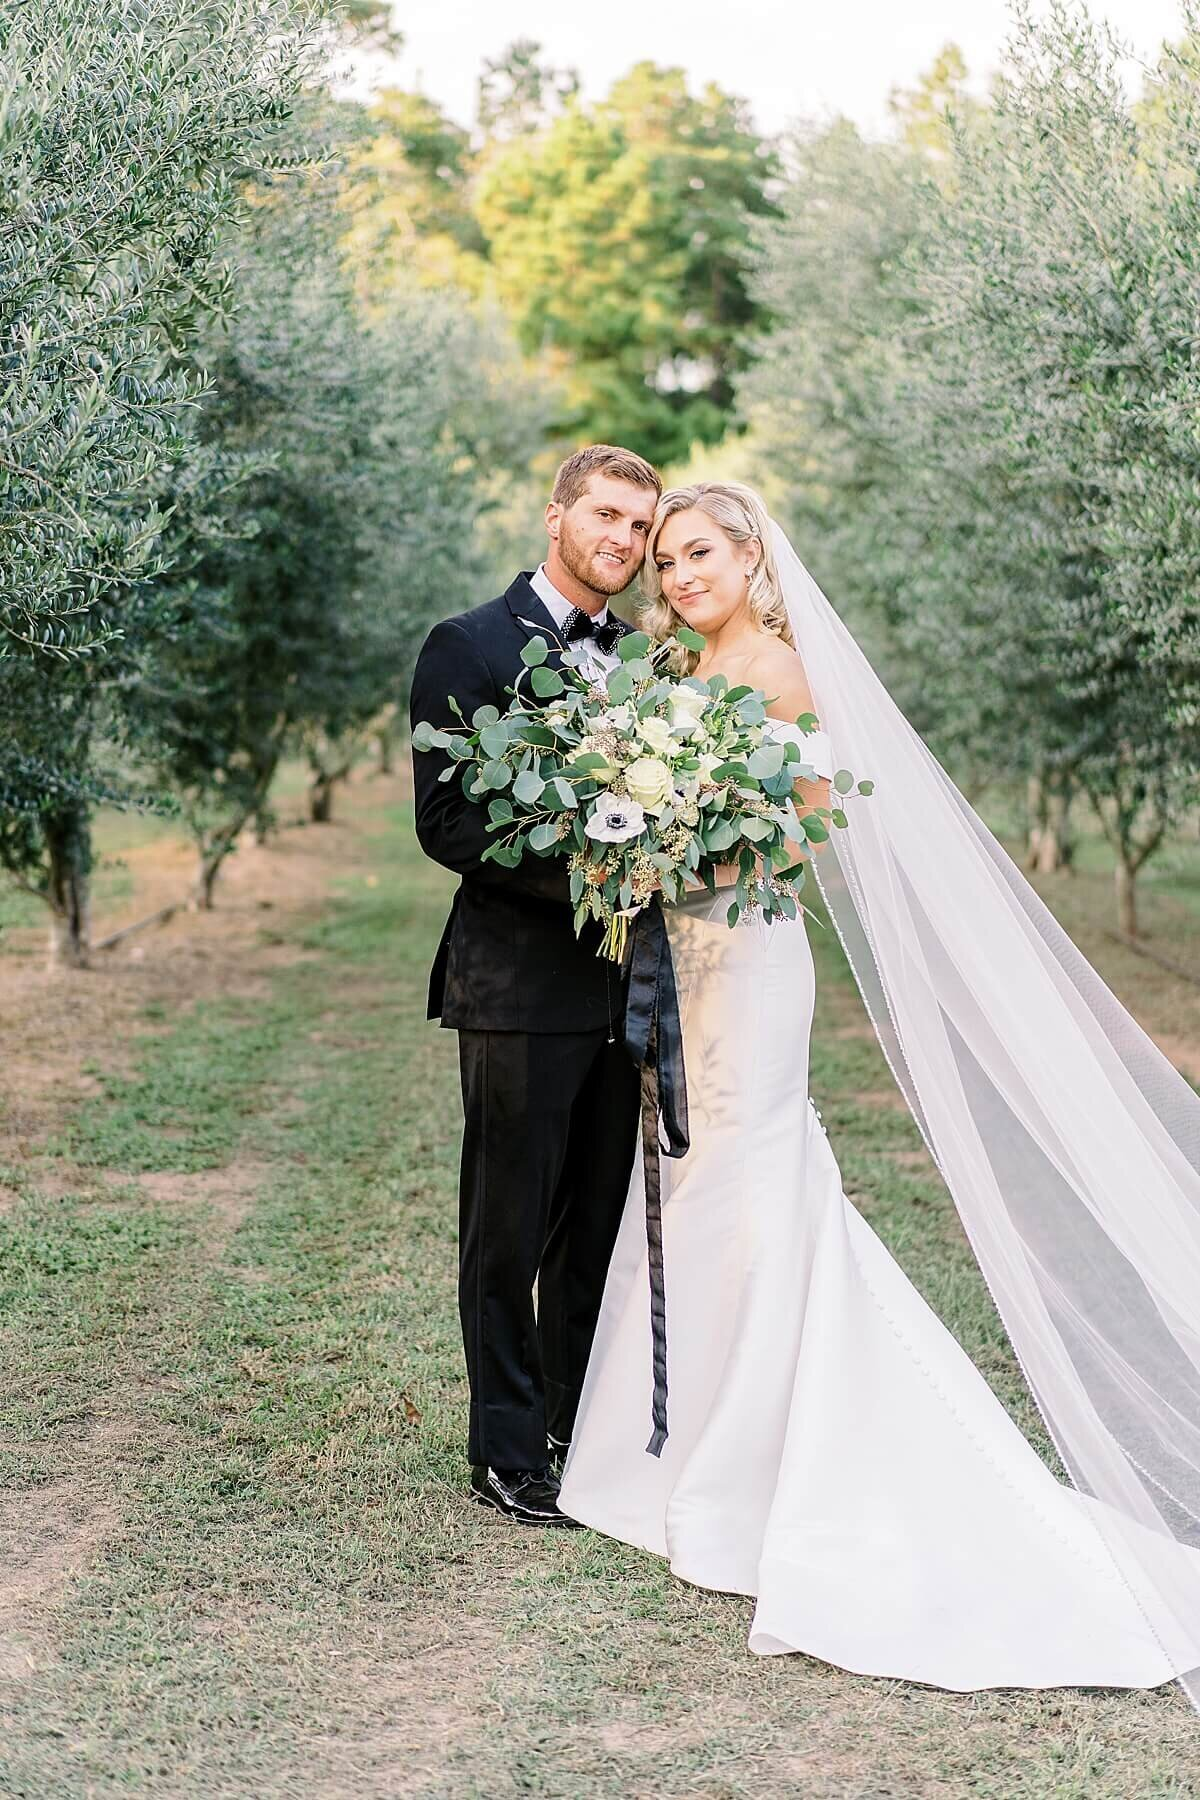 Bride and Groom Portraits in the Olive Grove at Annex Wedding Venue photography by Alicia Yarrish Photography